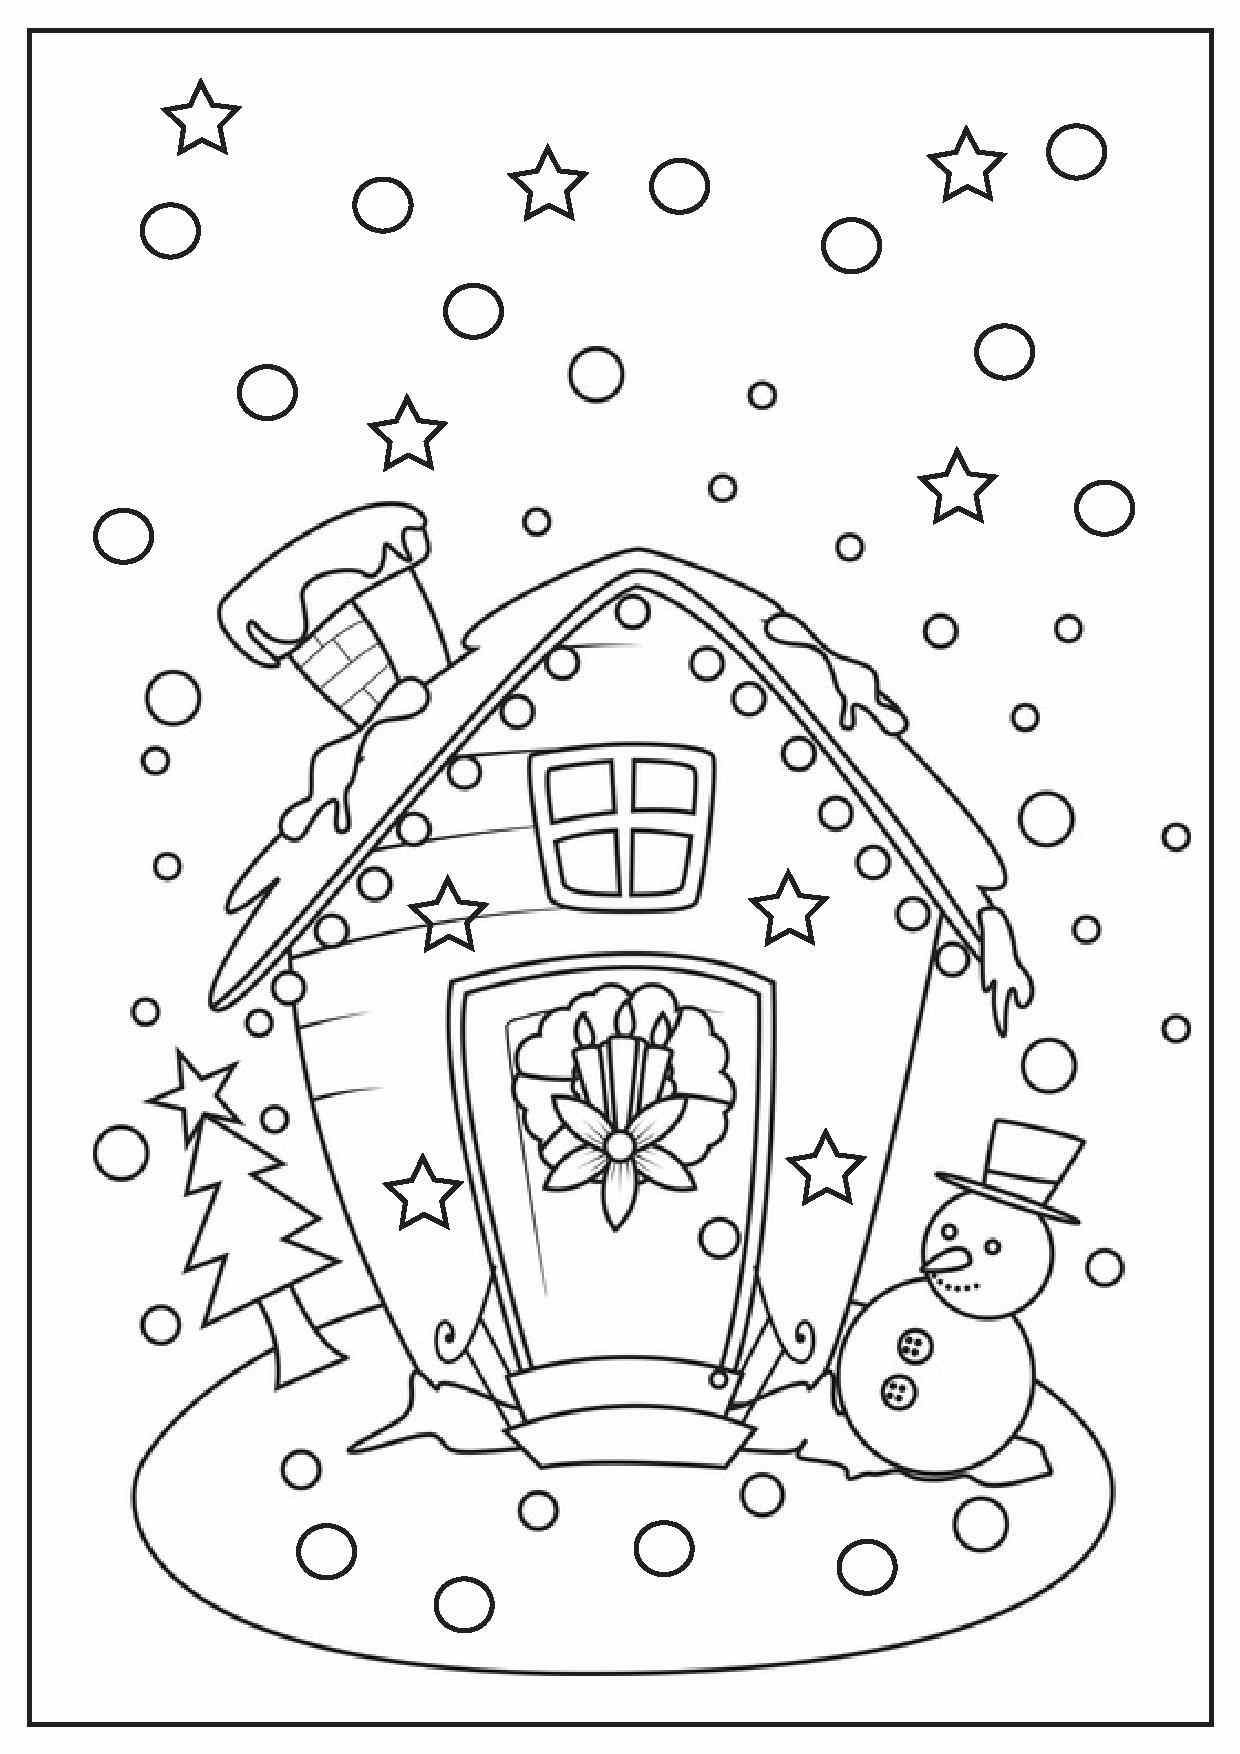 Image Result For Christmas Coloring Pages For Adults Coloring